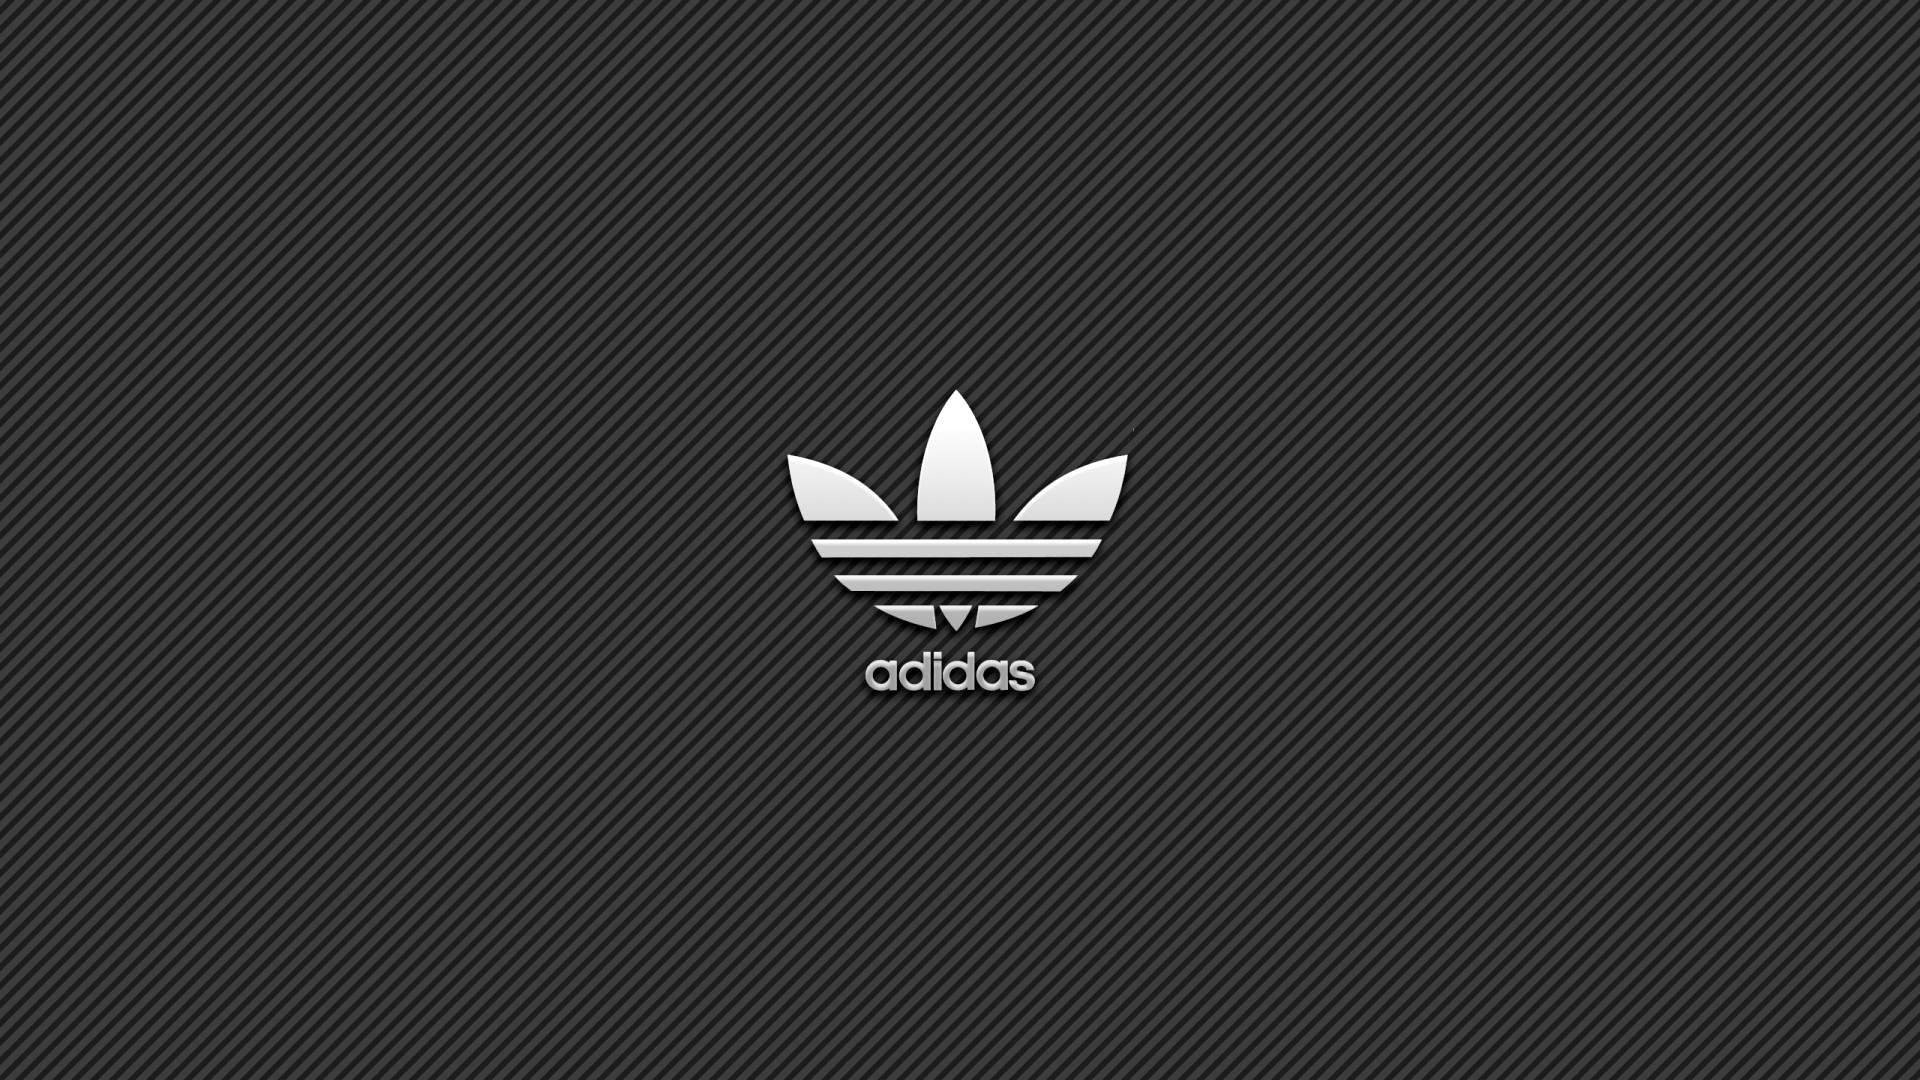 Adidas Soccer Wallpapers 1080p